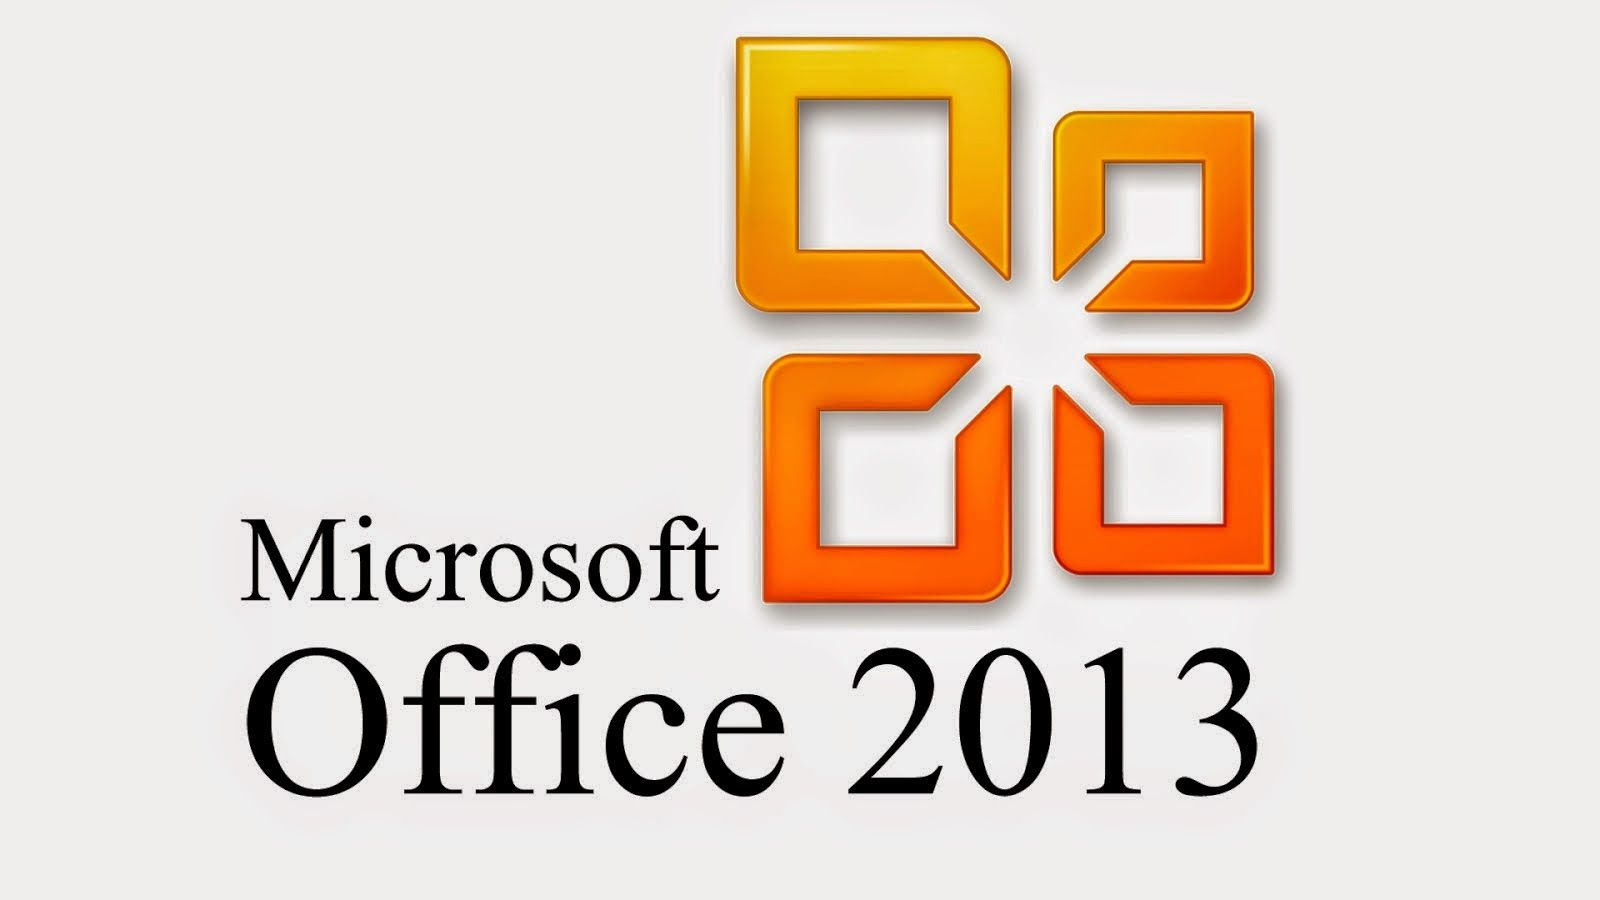 Free Download Microsoft Office 2013 Iso File Microsoft Office